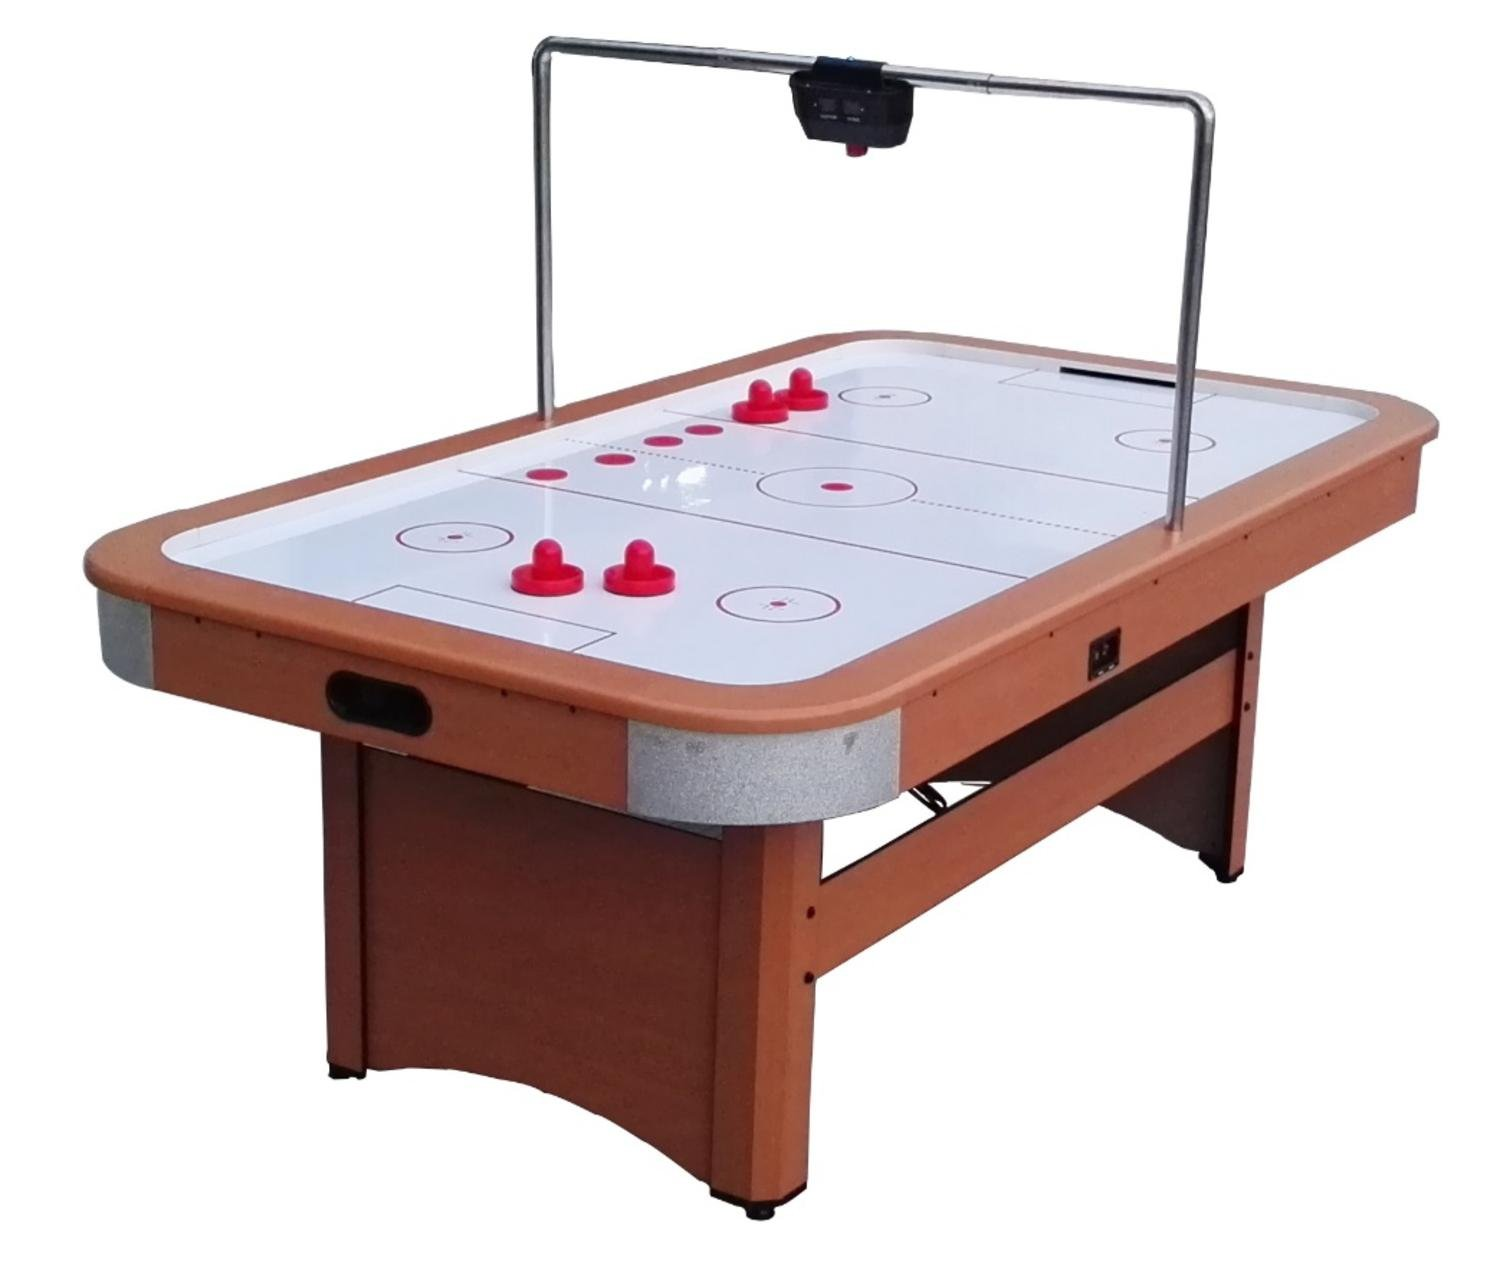 Pool Central AC010-7FT Game Table, Brown/White/Red, 7' 4' by Pool Central